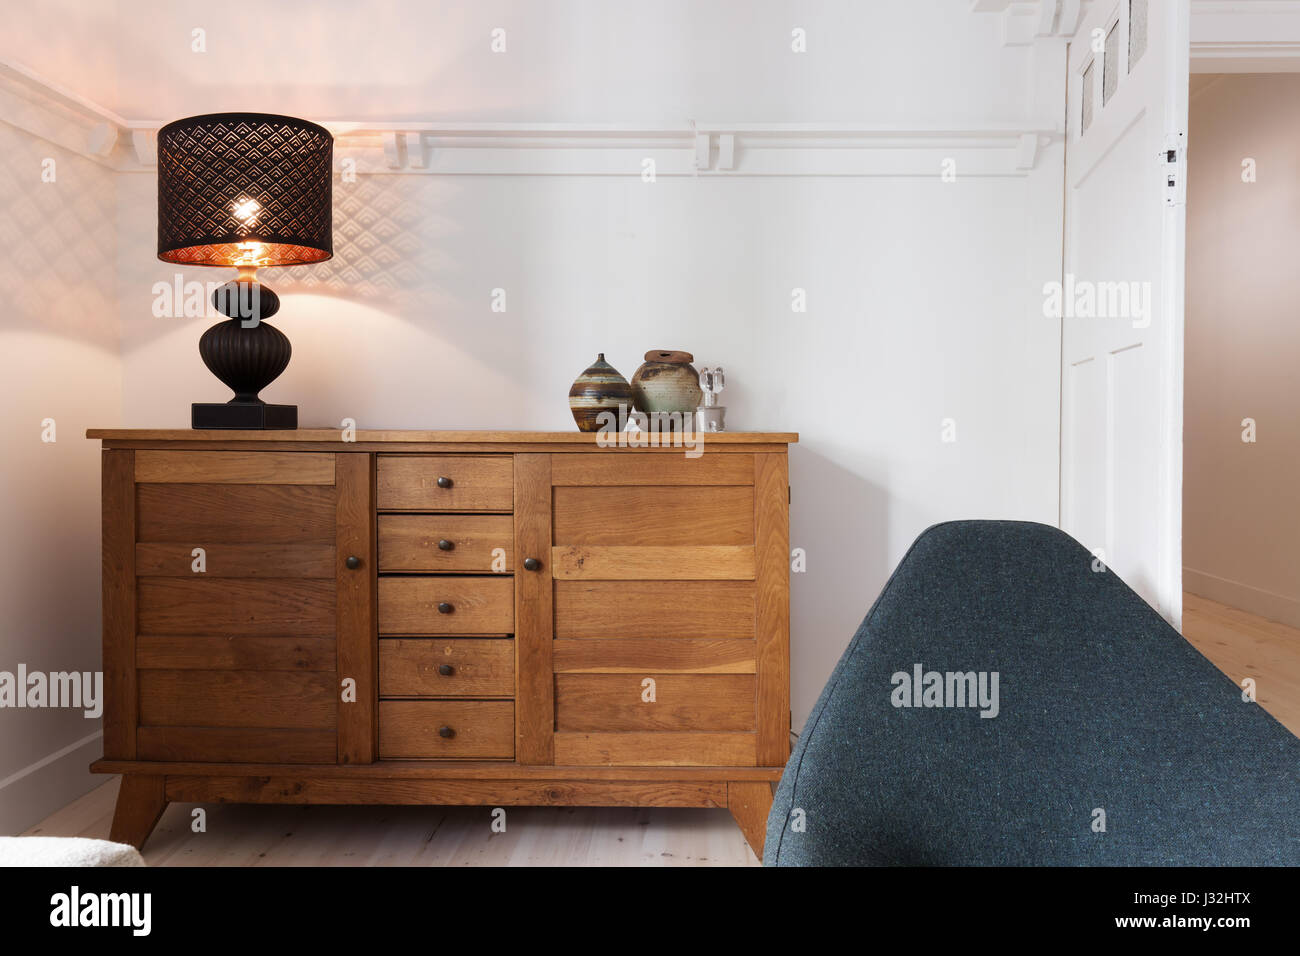 Illuminated Lamp On Sideboard Buffet In Luxury Living Room Stock